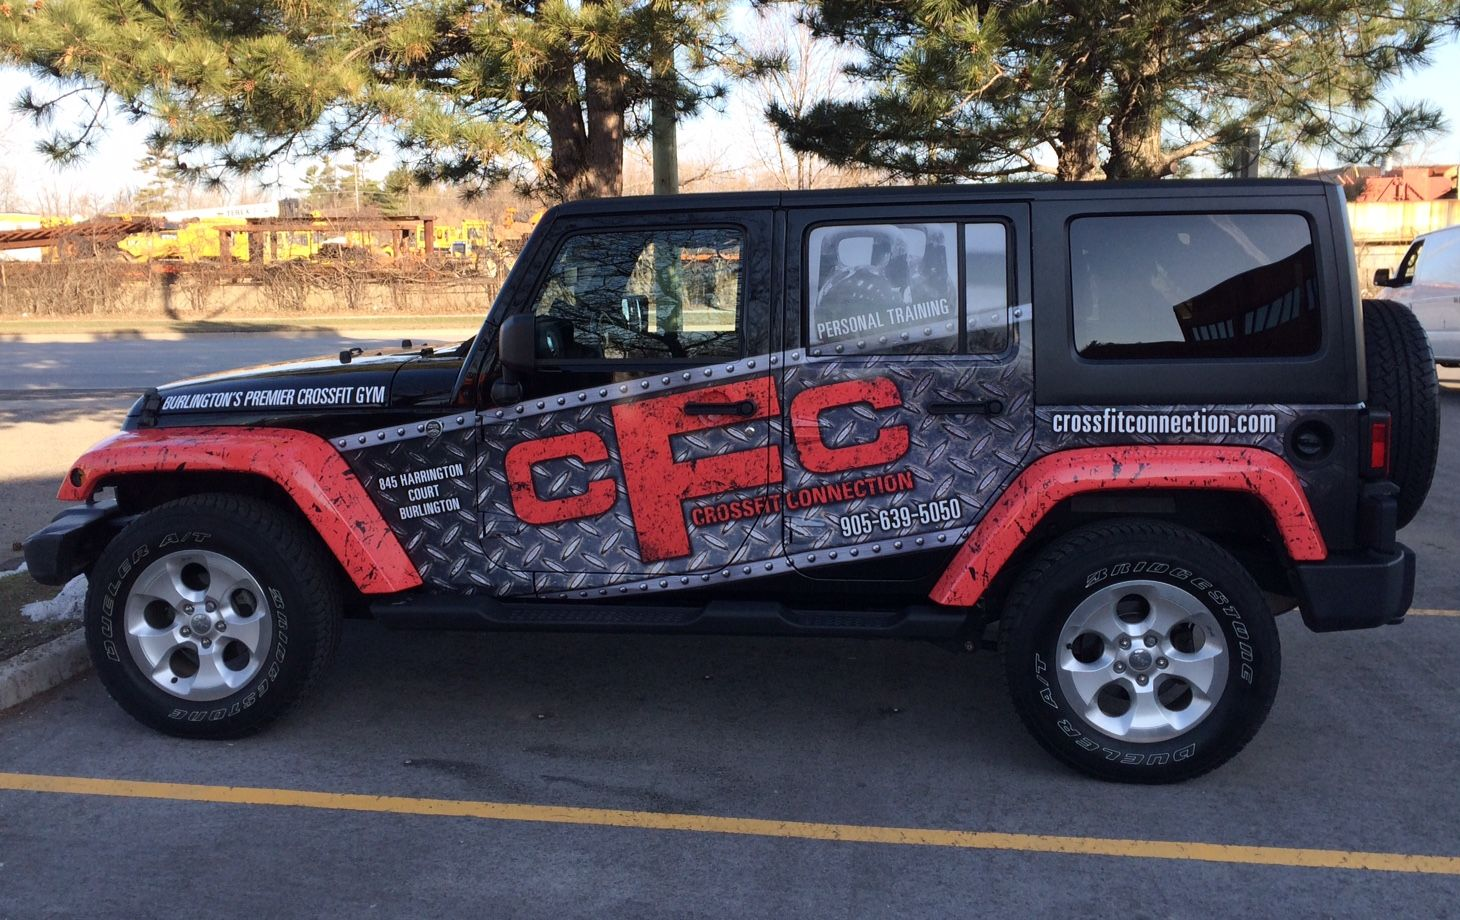 This Jeep Sahara 4 door partial wrap for Crossfit Connection completed by Speedpro Imaging Oakville. The owner wanted to extend his current branding from the gym to his vehicle. Impactful!